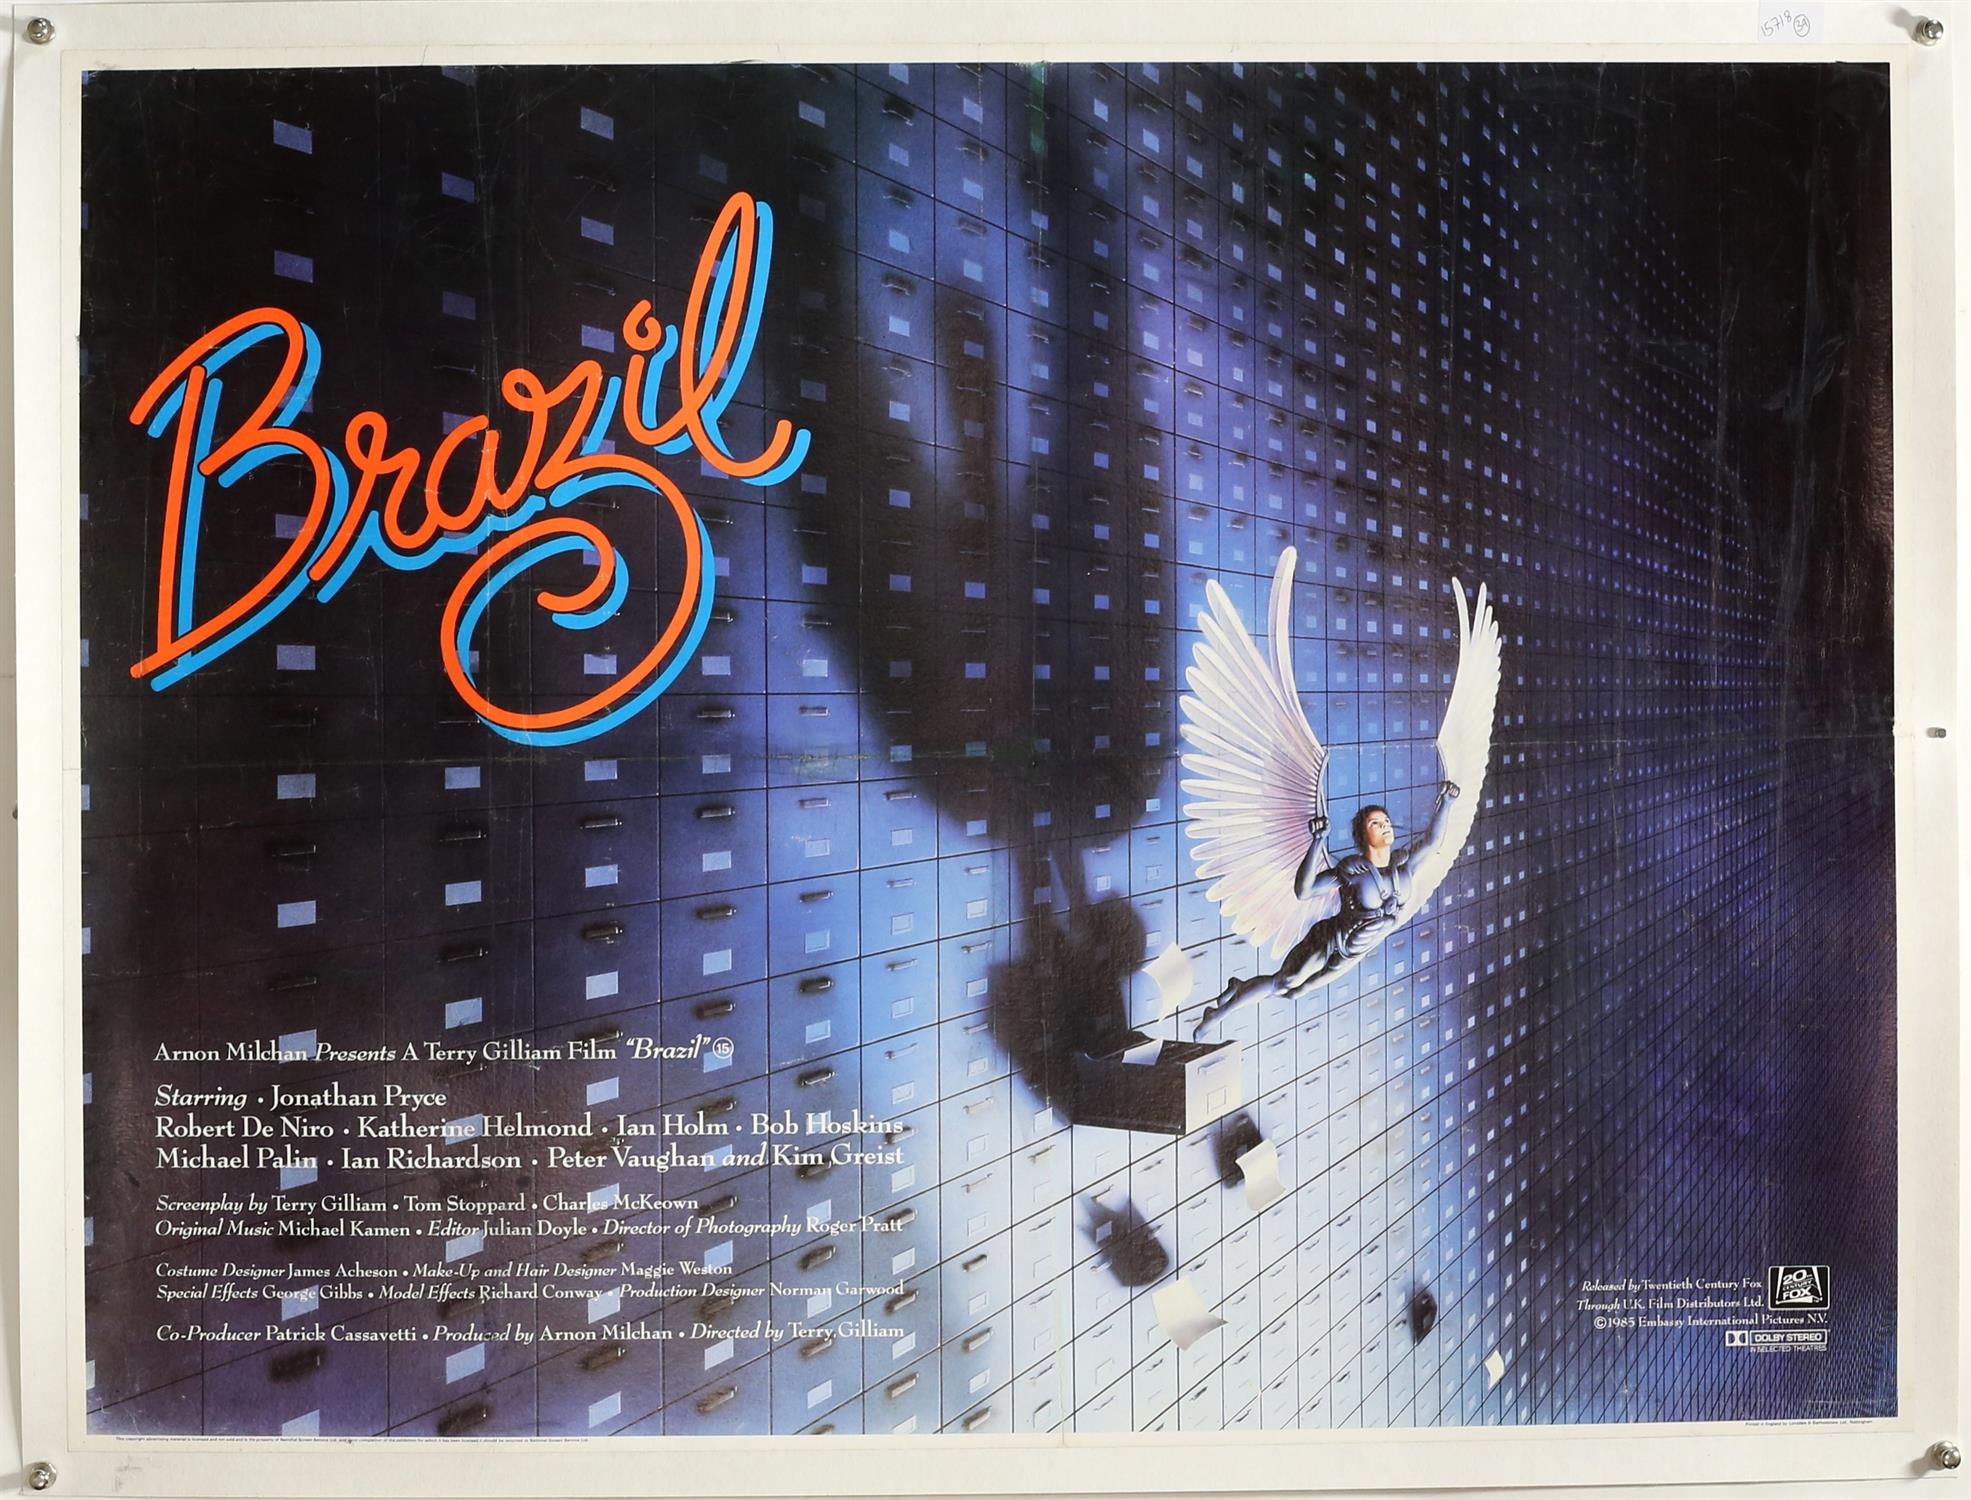 Brazil (1985) British Quad film poster, rare 'withdrawn' design after a fall out between Terry